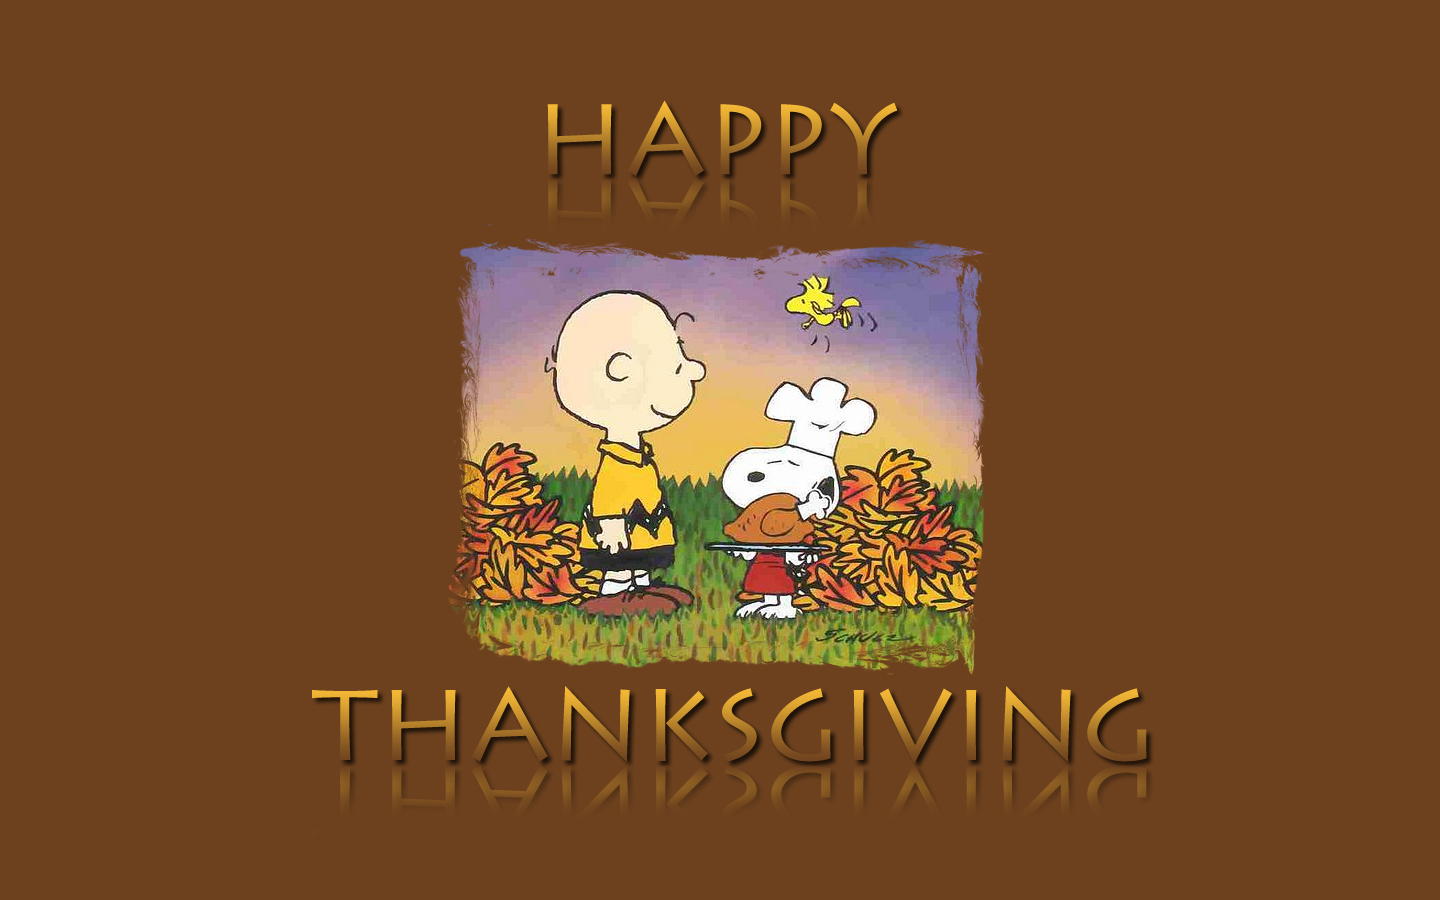 Related Images with Free Snoopy Thanksgiving Wallpaper WallpaperSafari